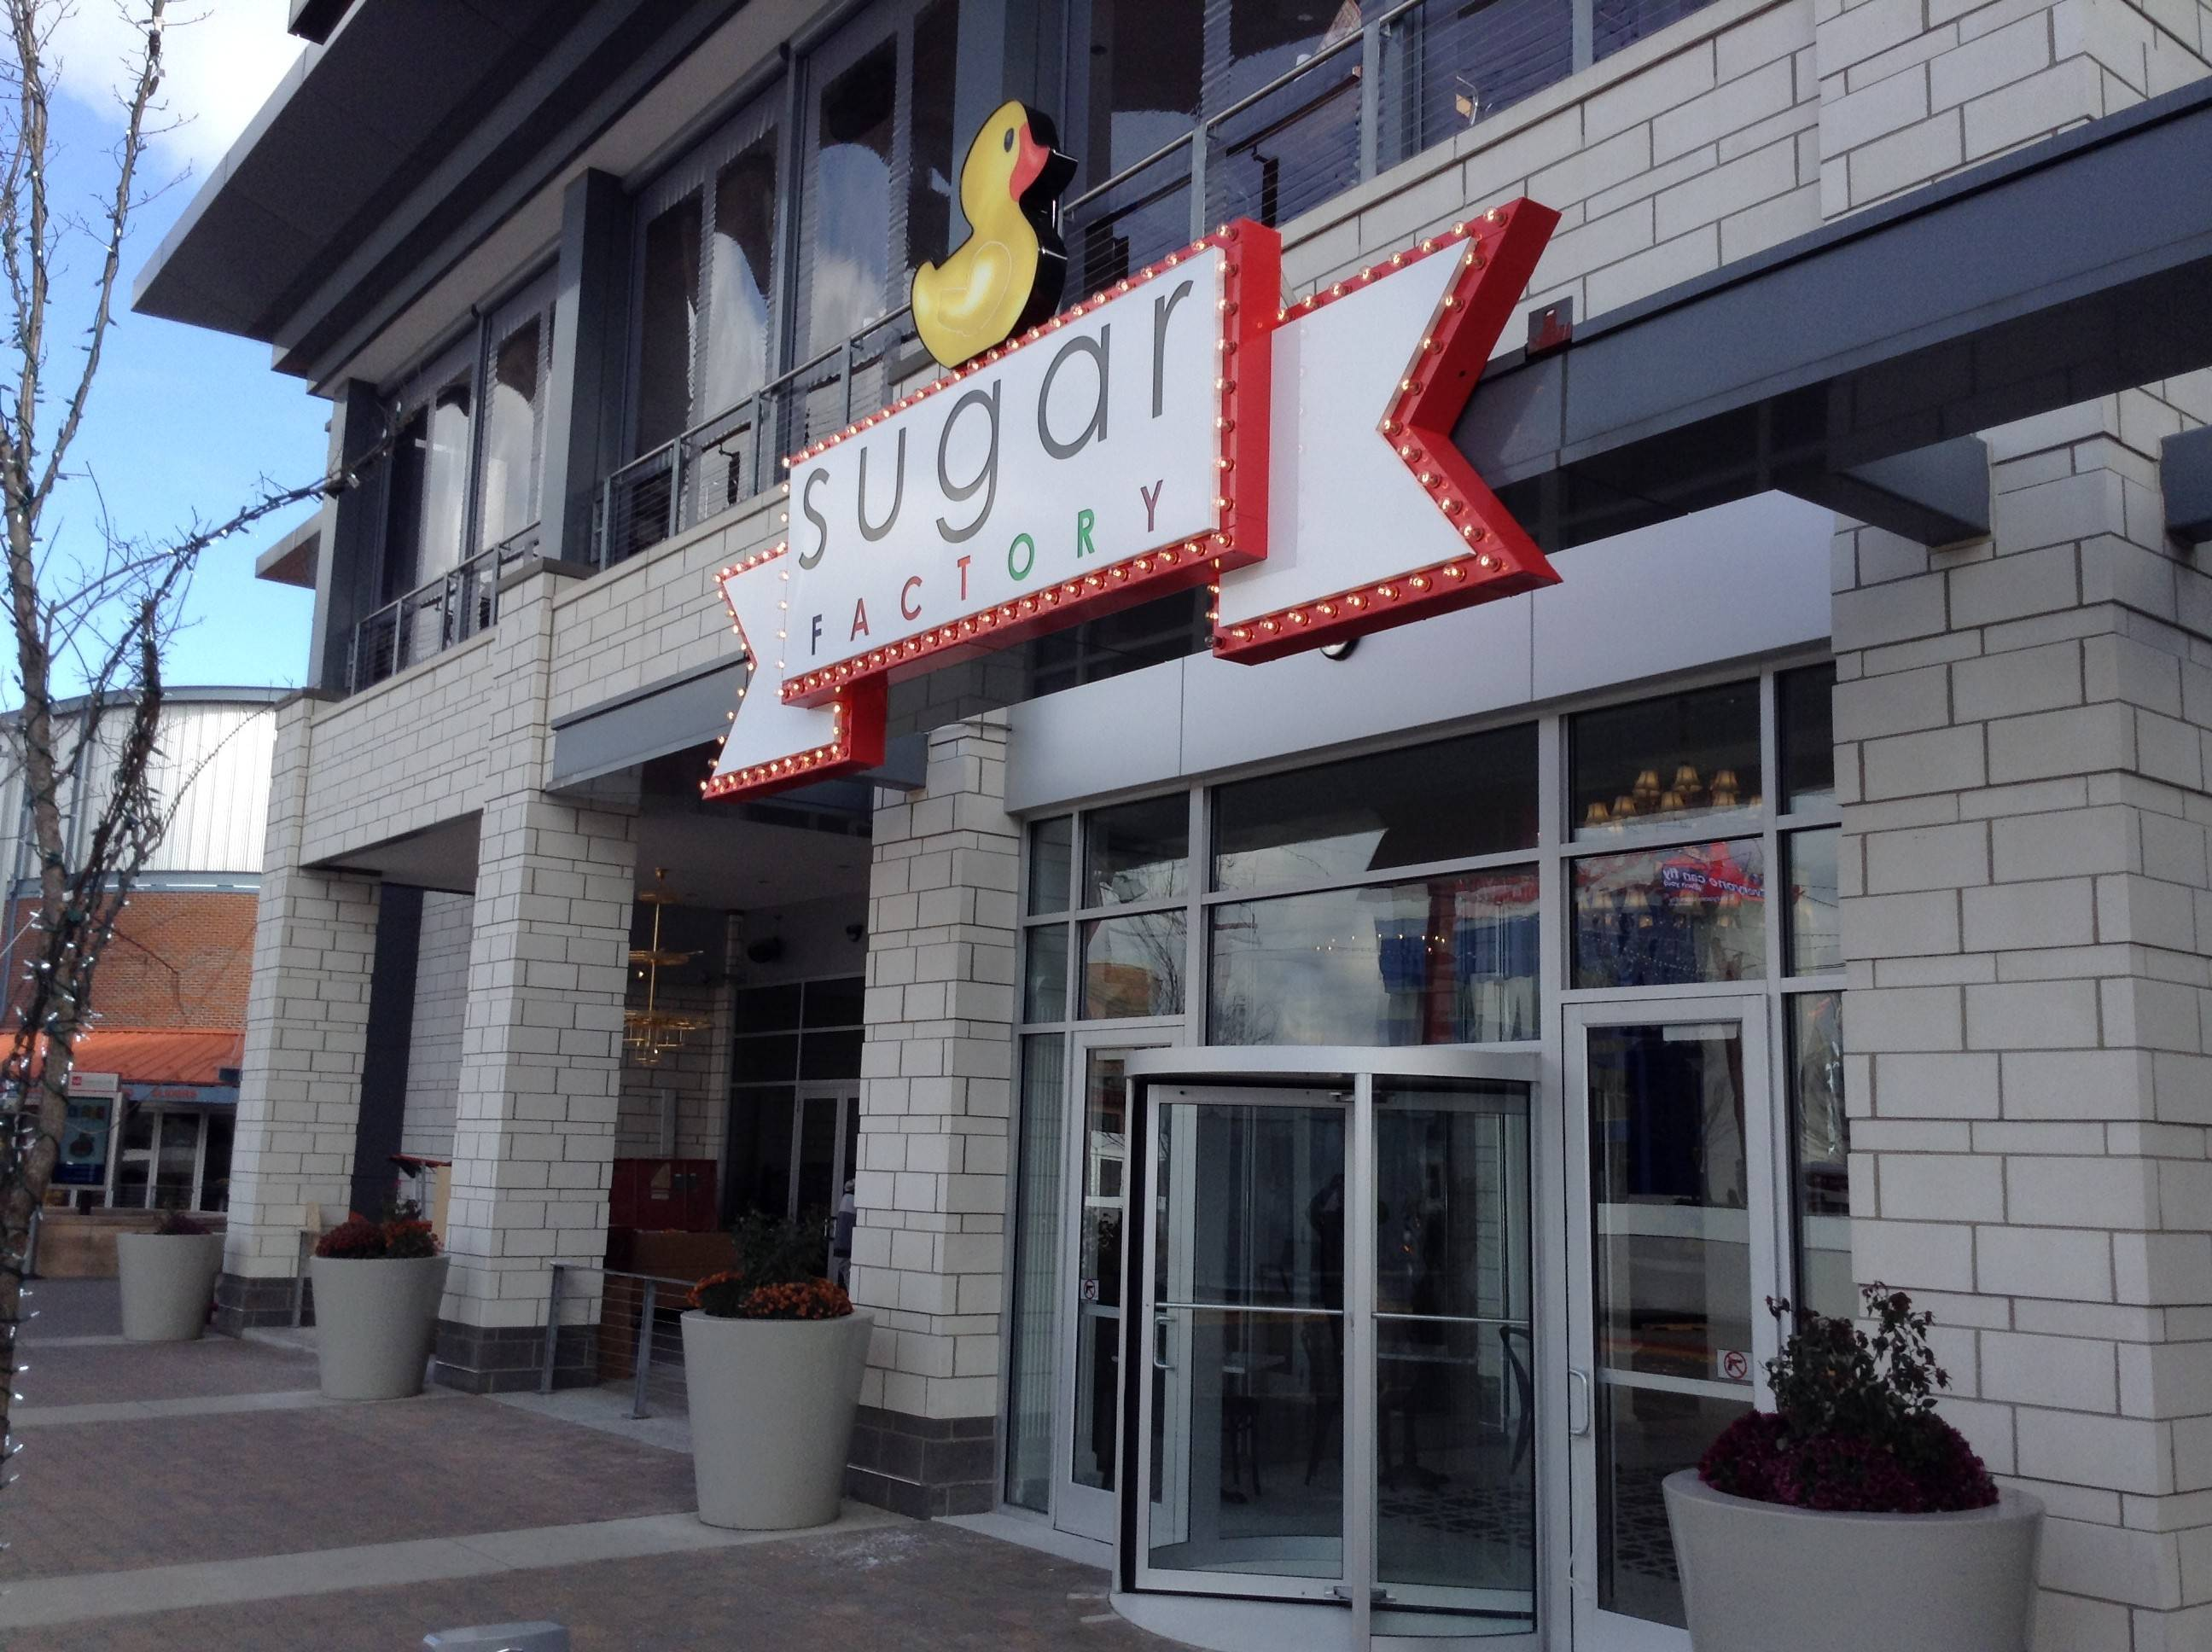 Upscale candy-inspired restaurant opens in Rosemont